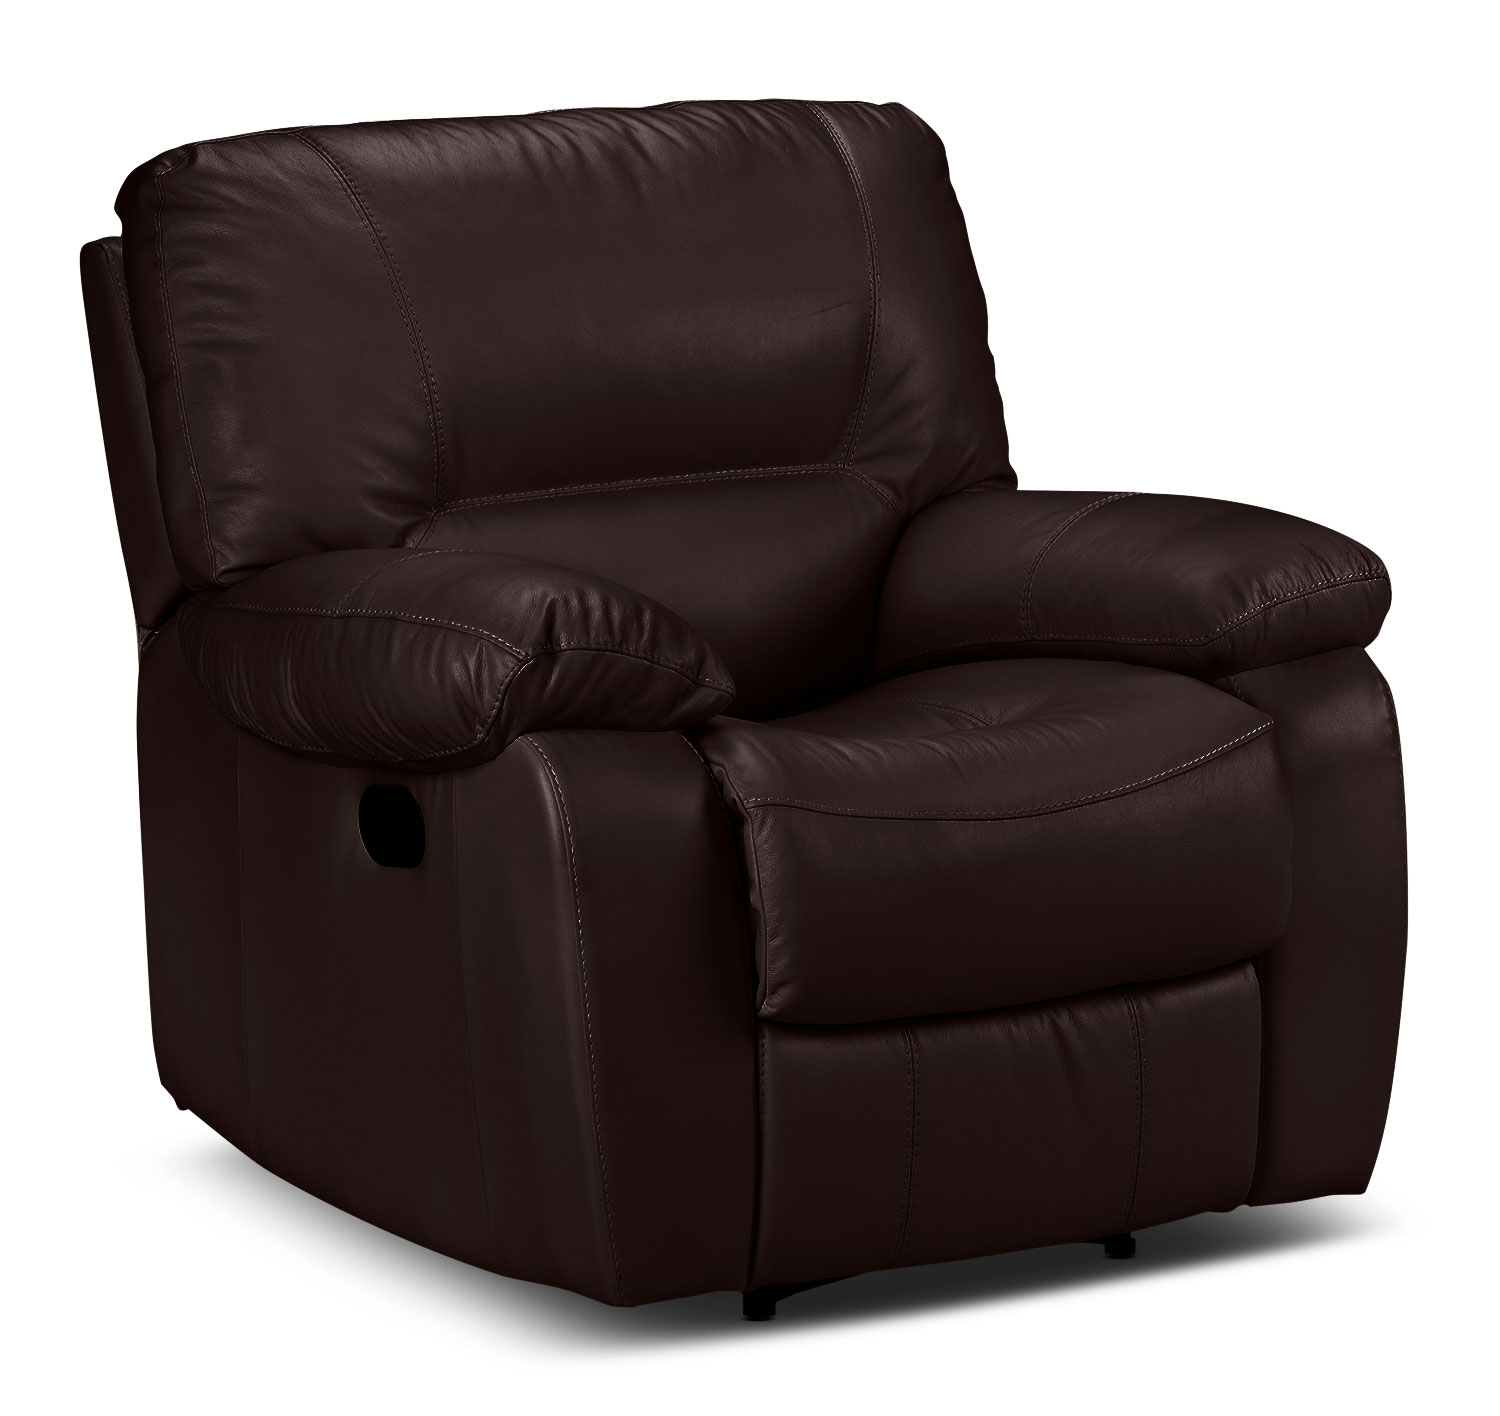 Living Room Furniture - Piermont Recliner - Chocolate